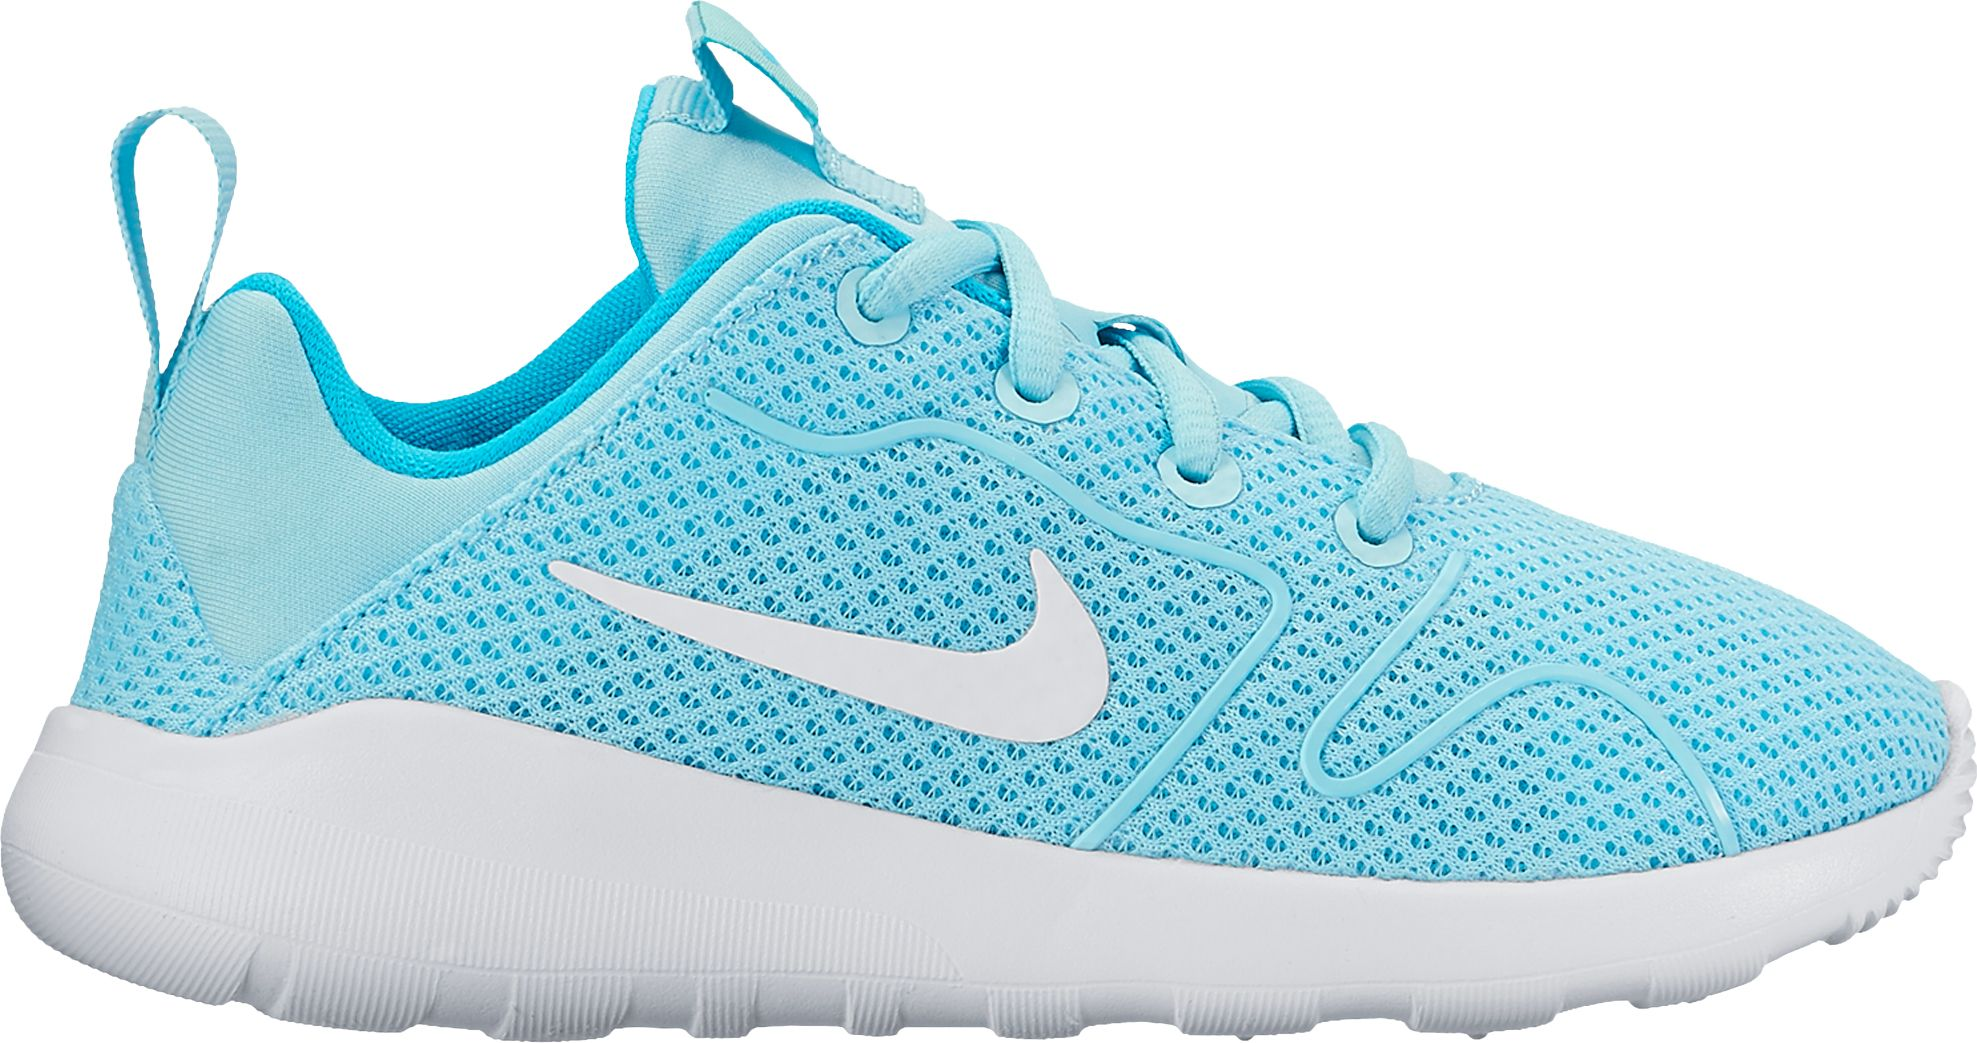 Nike Shoes For Kids : Nike × Men and Women's shoes 2018 ...